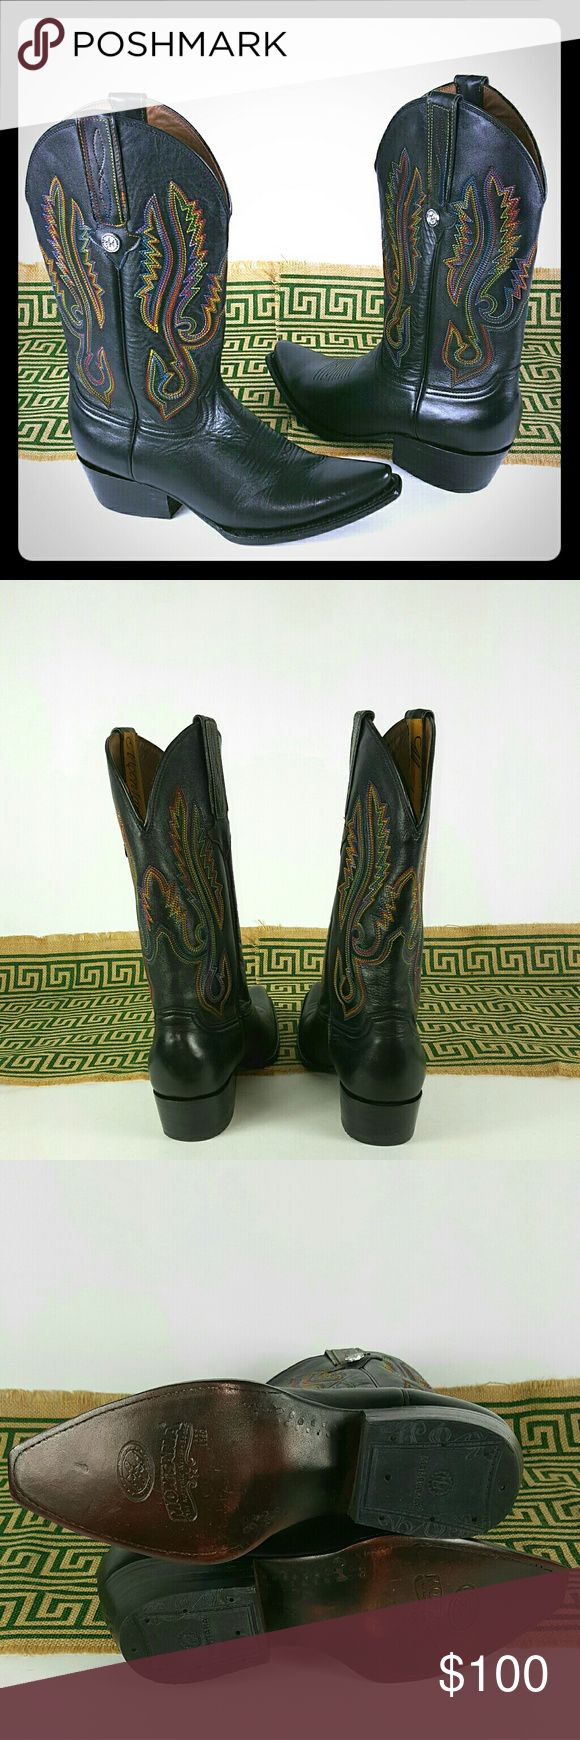 Montana Western boots, SZ 8, Never Worn Montana Western Boots Black Leather with Embroidered designs,  Size 8, New without box...Never Worn Montana  Shoes Ankle Boots & Booties